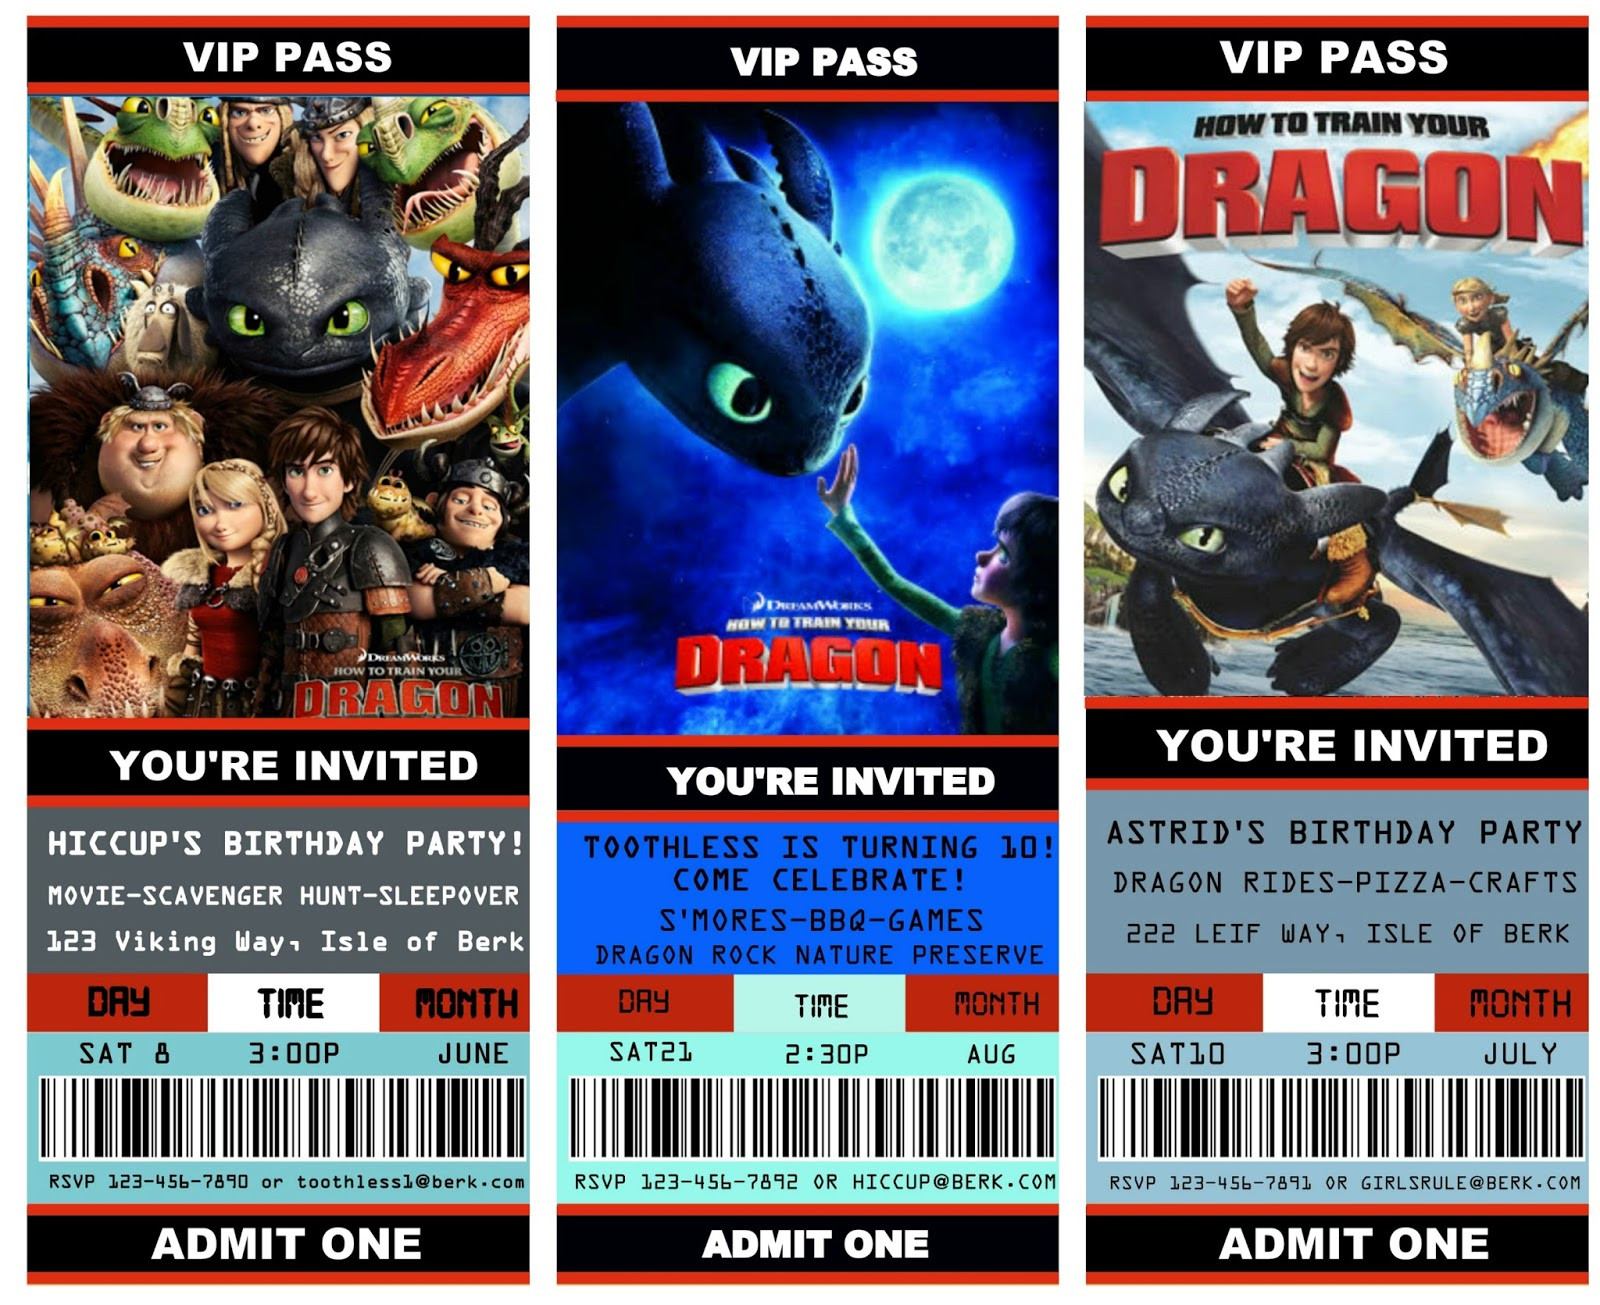 Elegant Free Printable Movie Ticket Style Invitations: How To Train Your Dragon Idea Free Printable Ticket Style Invitations